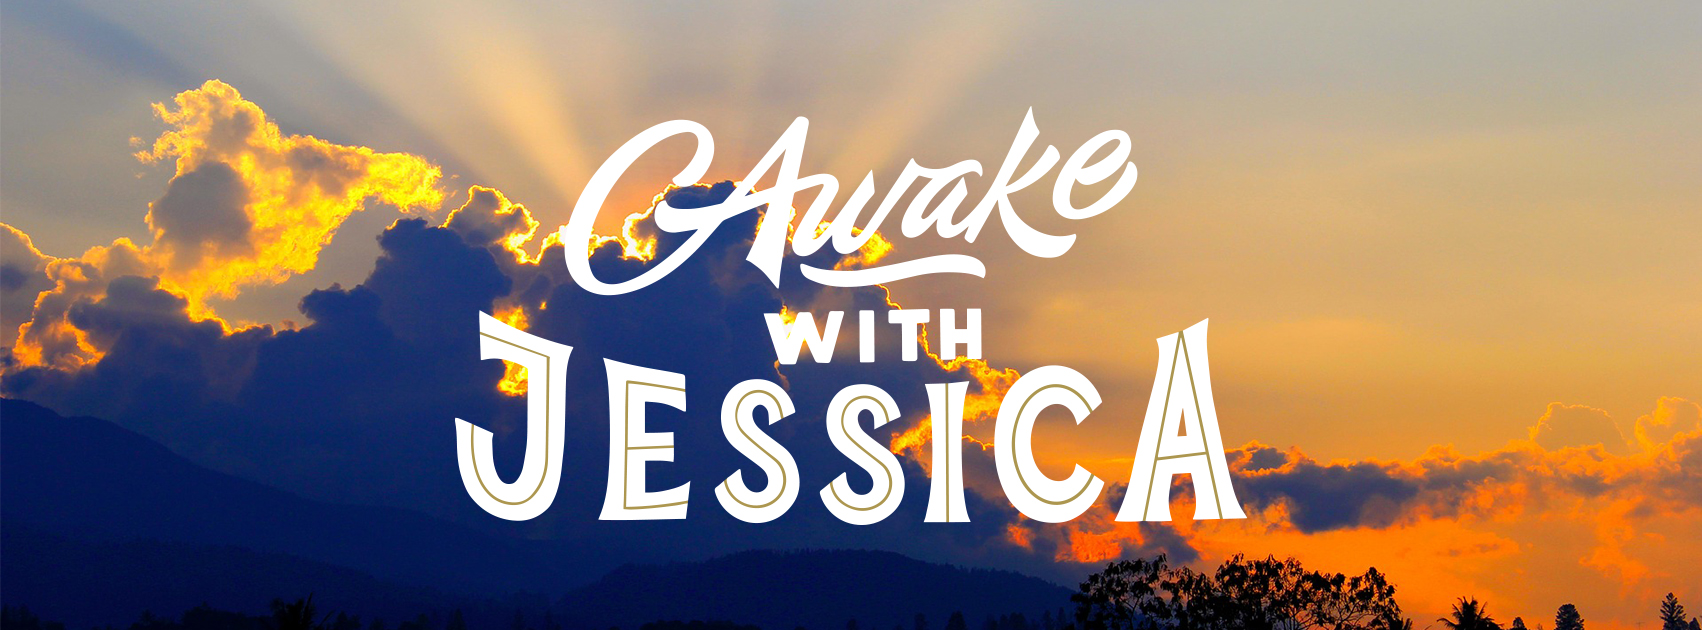 AwakeWithJessica